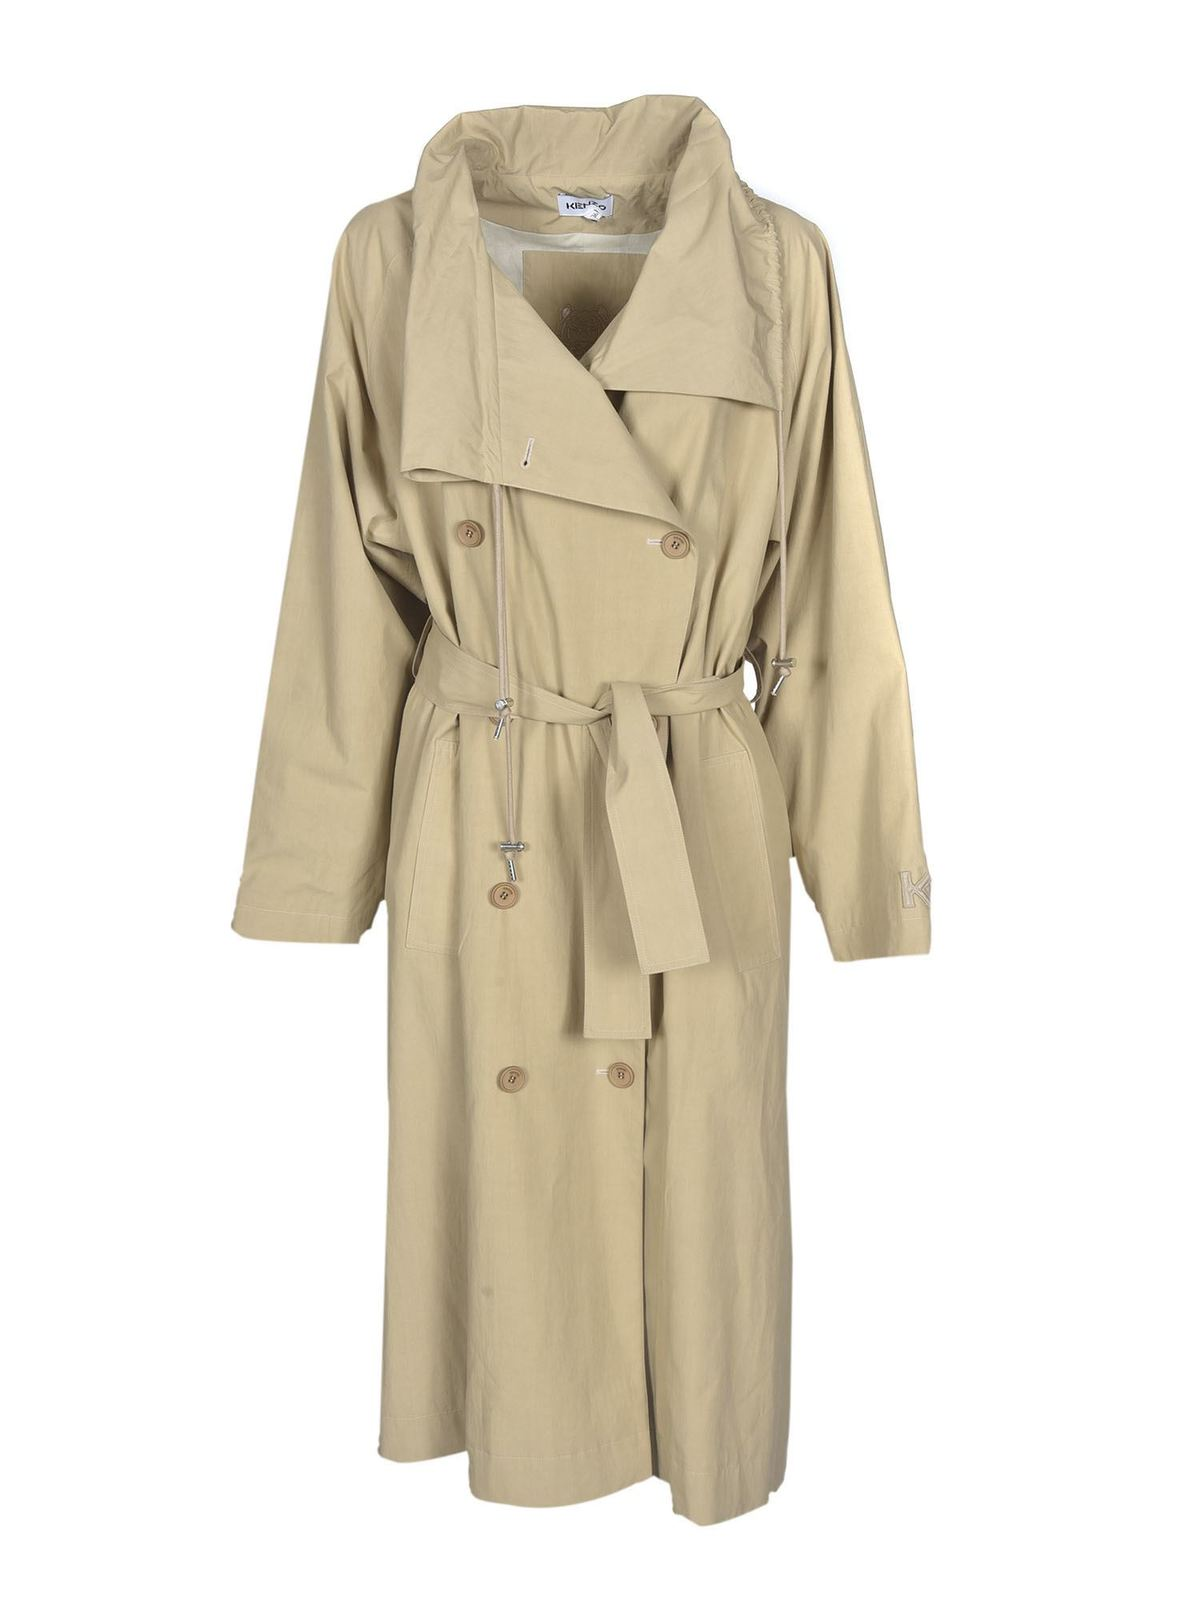 Kenzo DOUBLE-BREASTED TRENCH COAT IN BEIGE